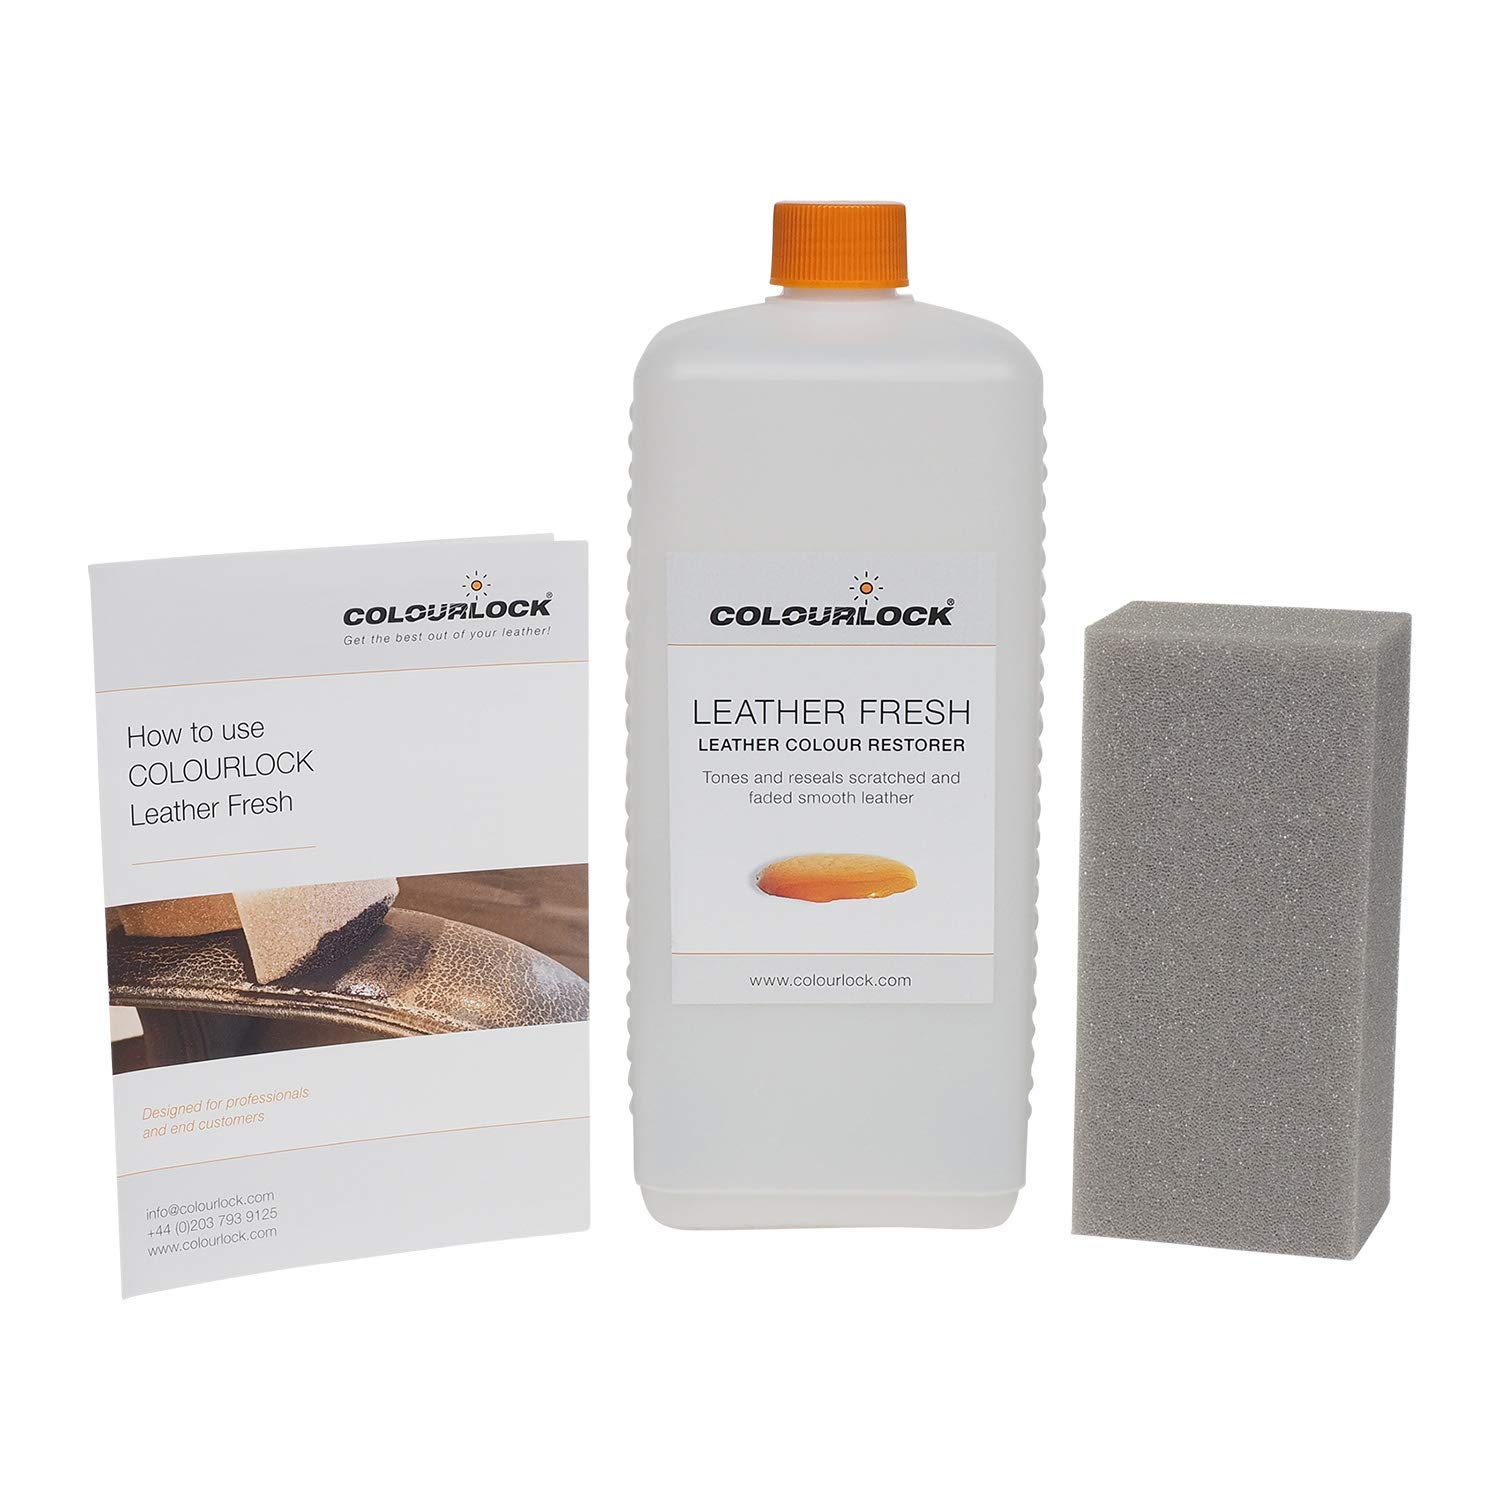 Colourlock Leather Fresh dye is a DIY Repair Color, dye, Restorer for Scuffs, Small Cracks on car Seats, Sofas, Bags, settees and Clothing - 1 Litre F033